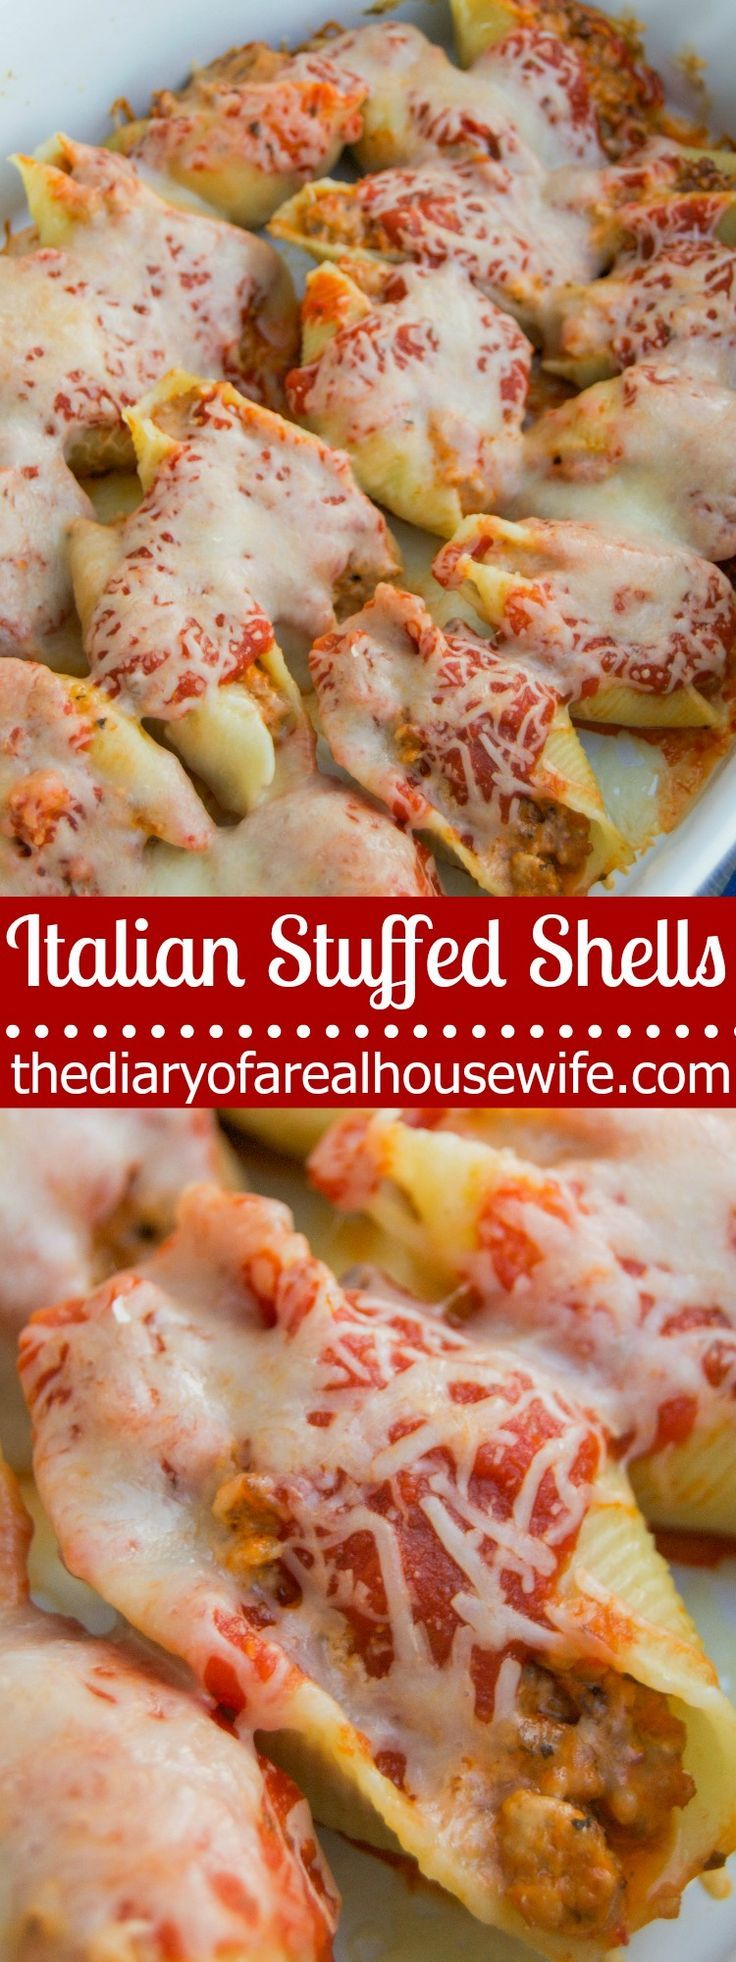 Italian Stuffed Shells. I LOVE these stuffed shells it may be my favorite recipe for them. Classic but so different and yummy! My kids also loved this recipe and ate it up.